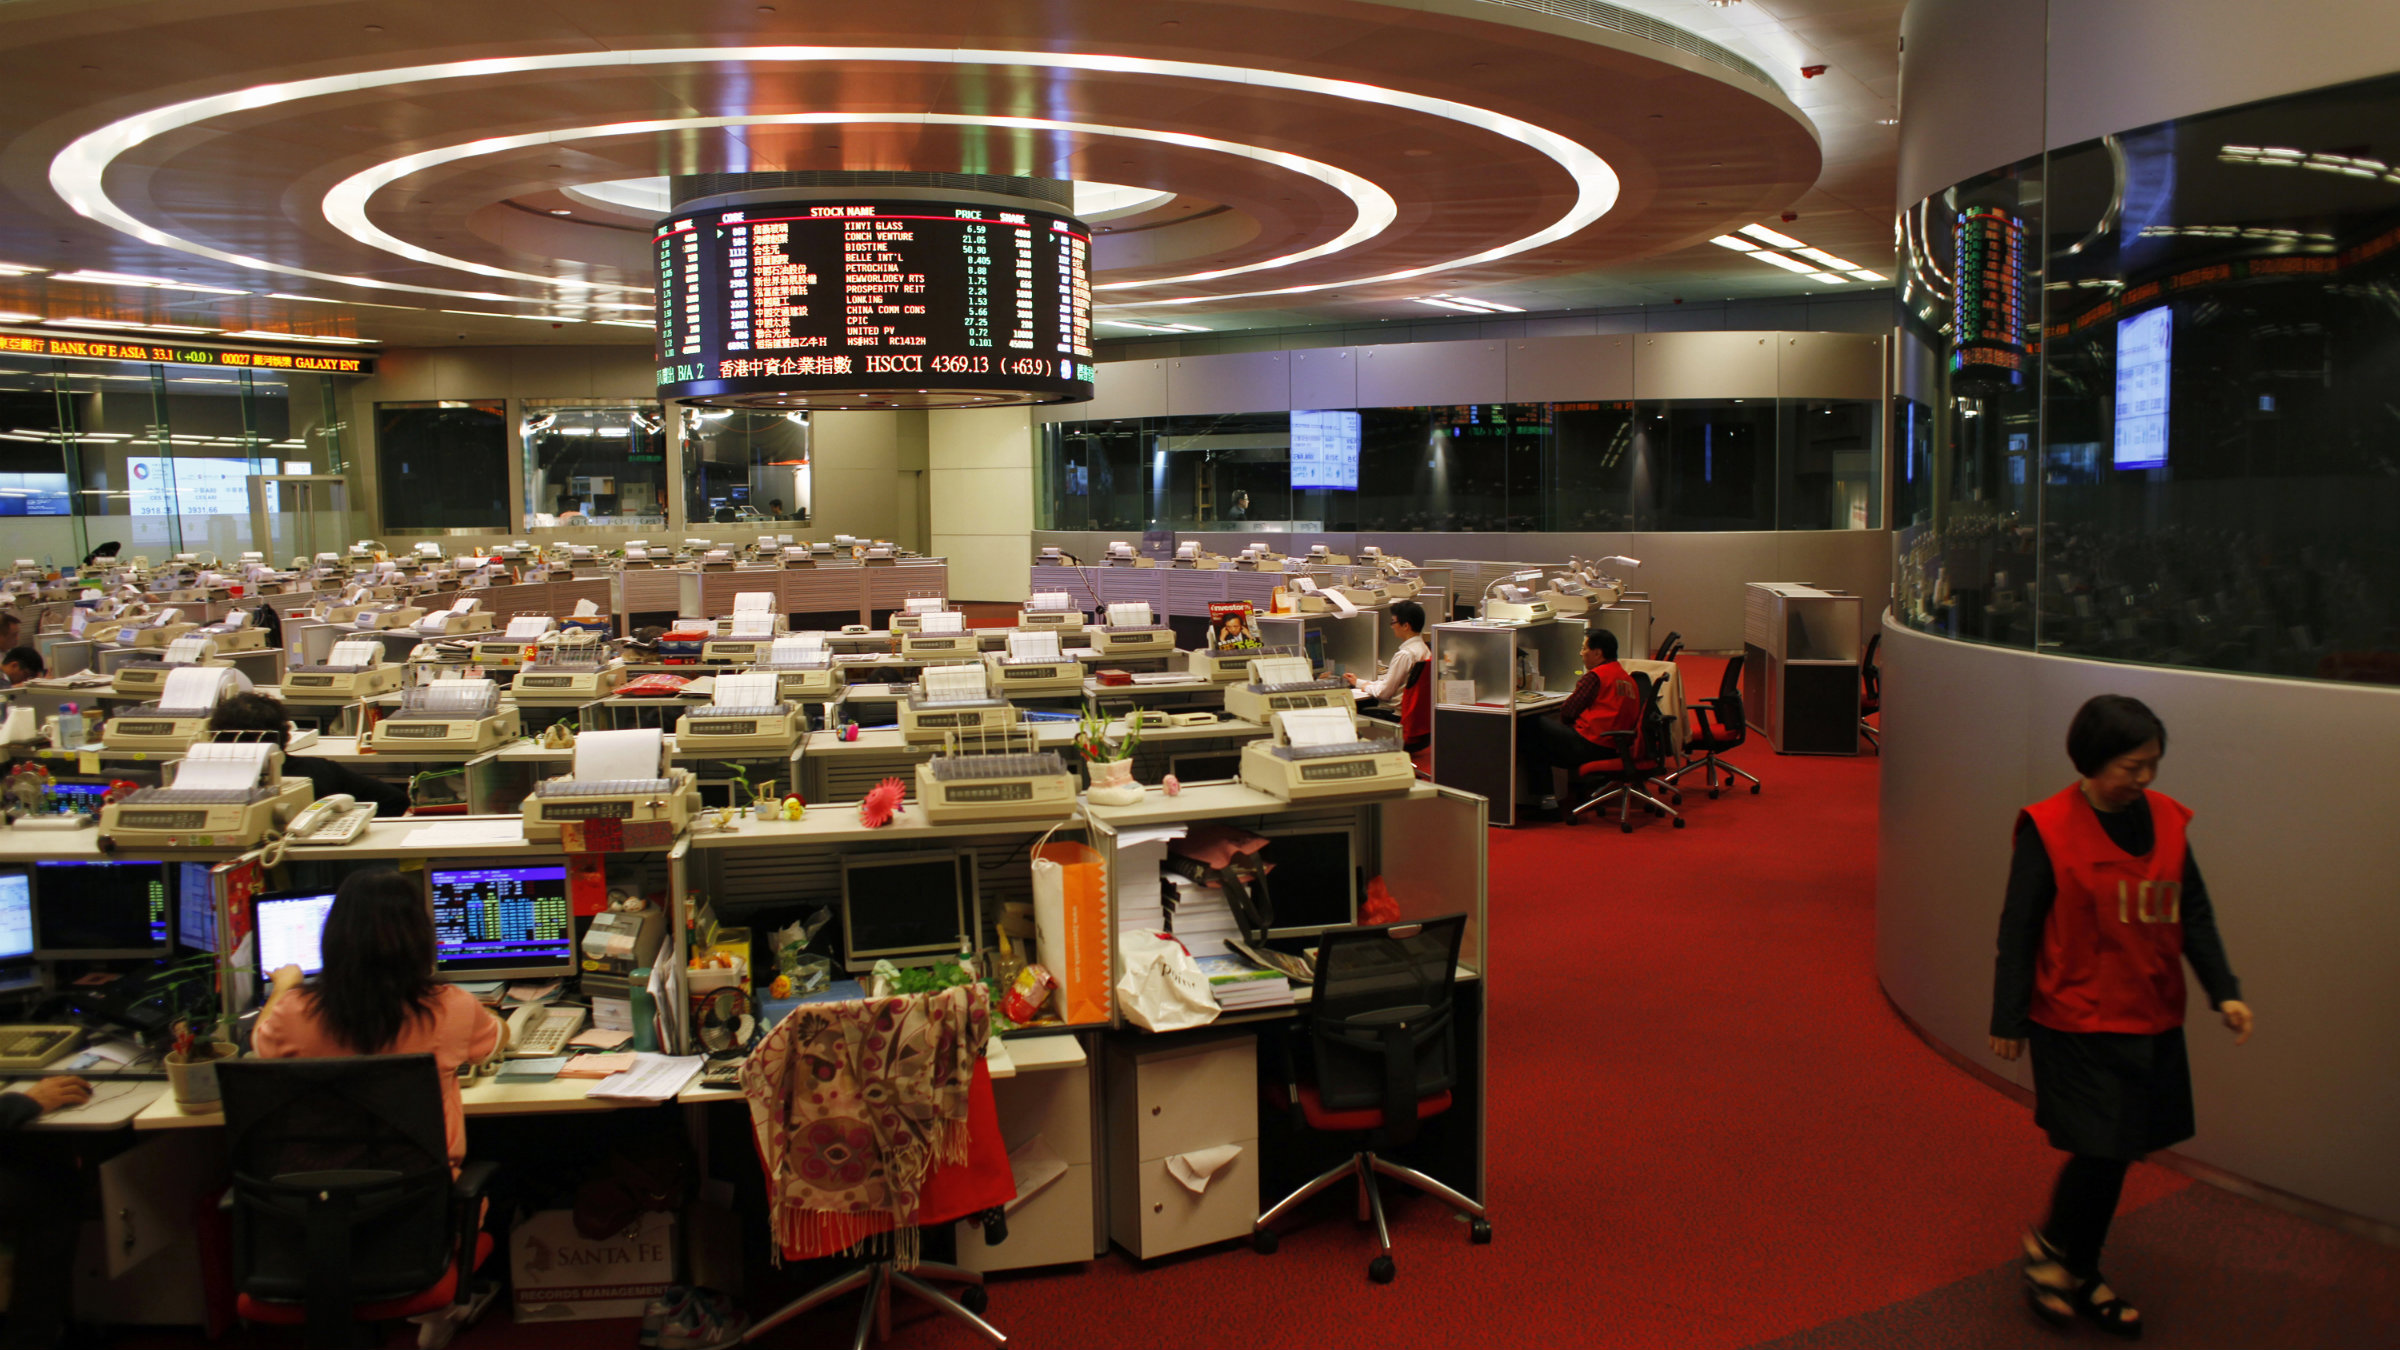 A trader walks inside the trading hall during afternoon trading at the Hong Kong Stock Exchange.